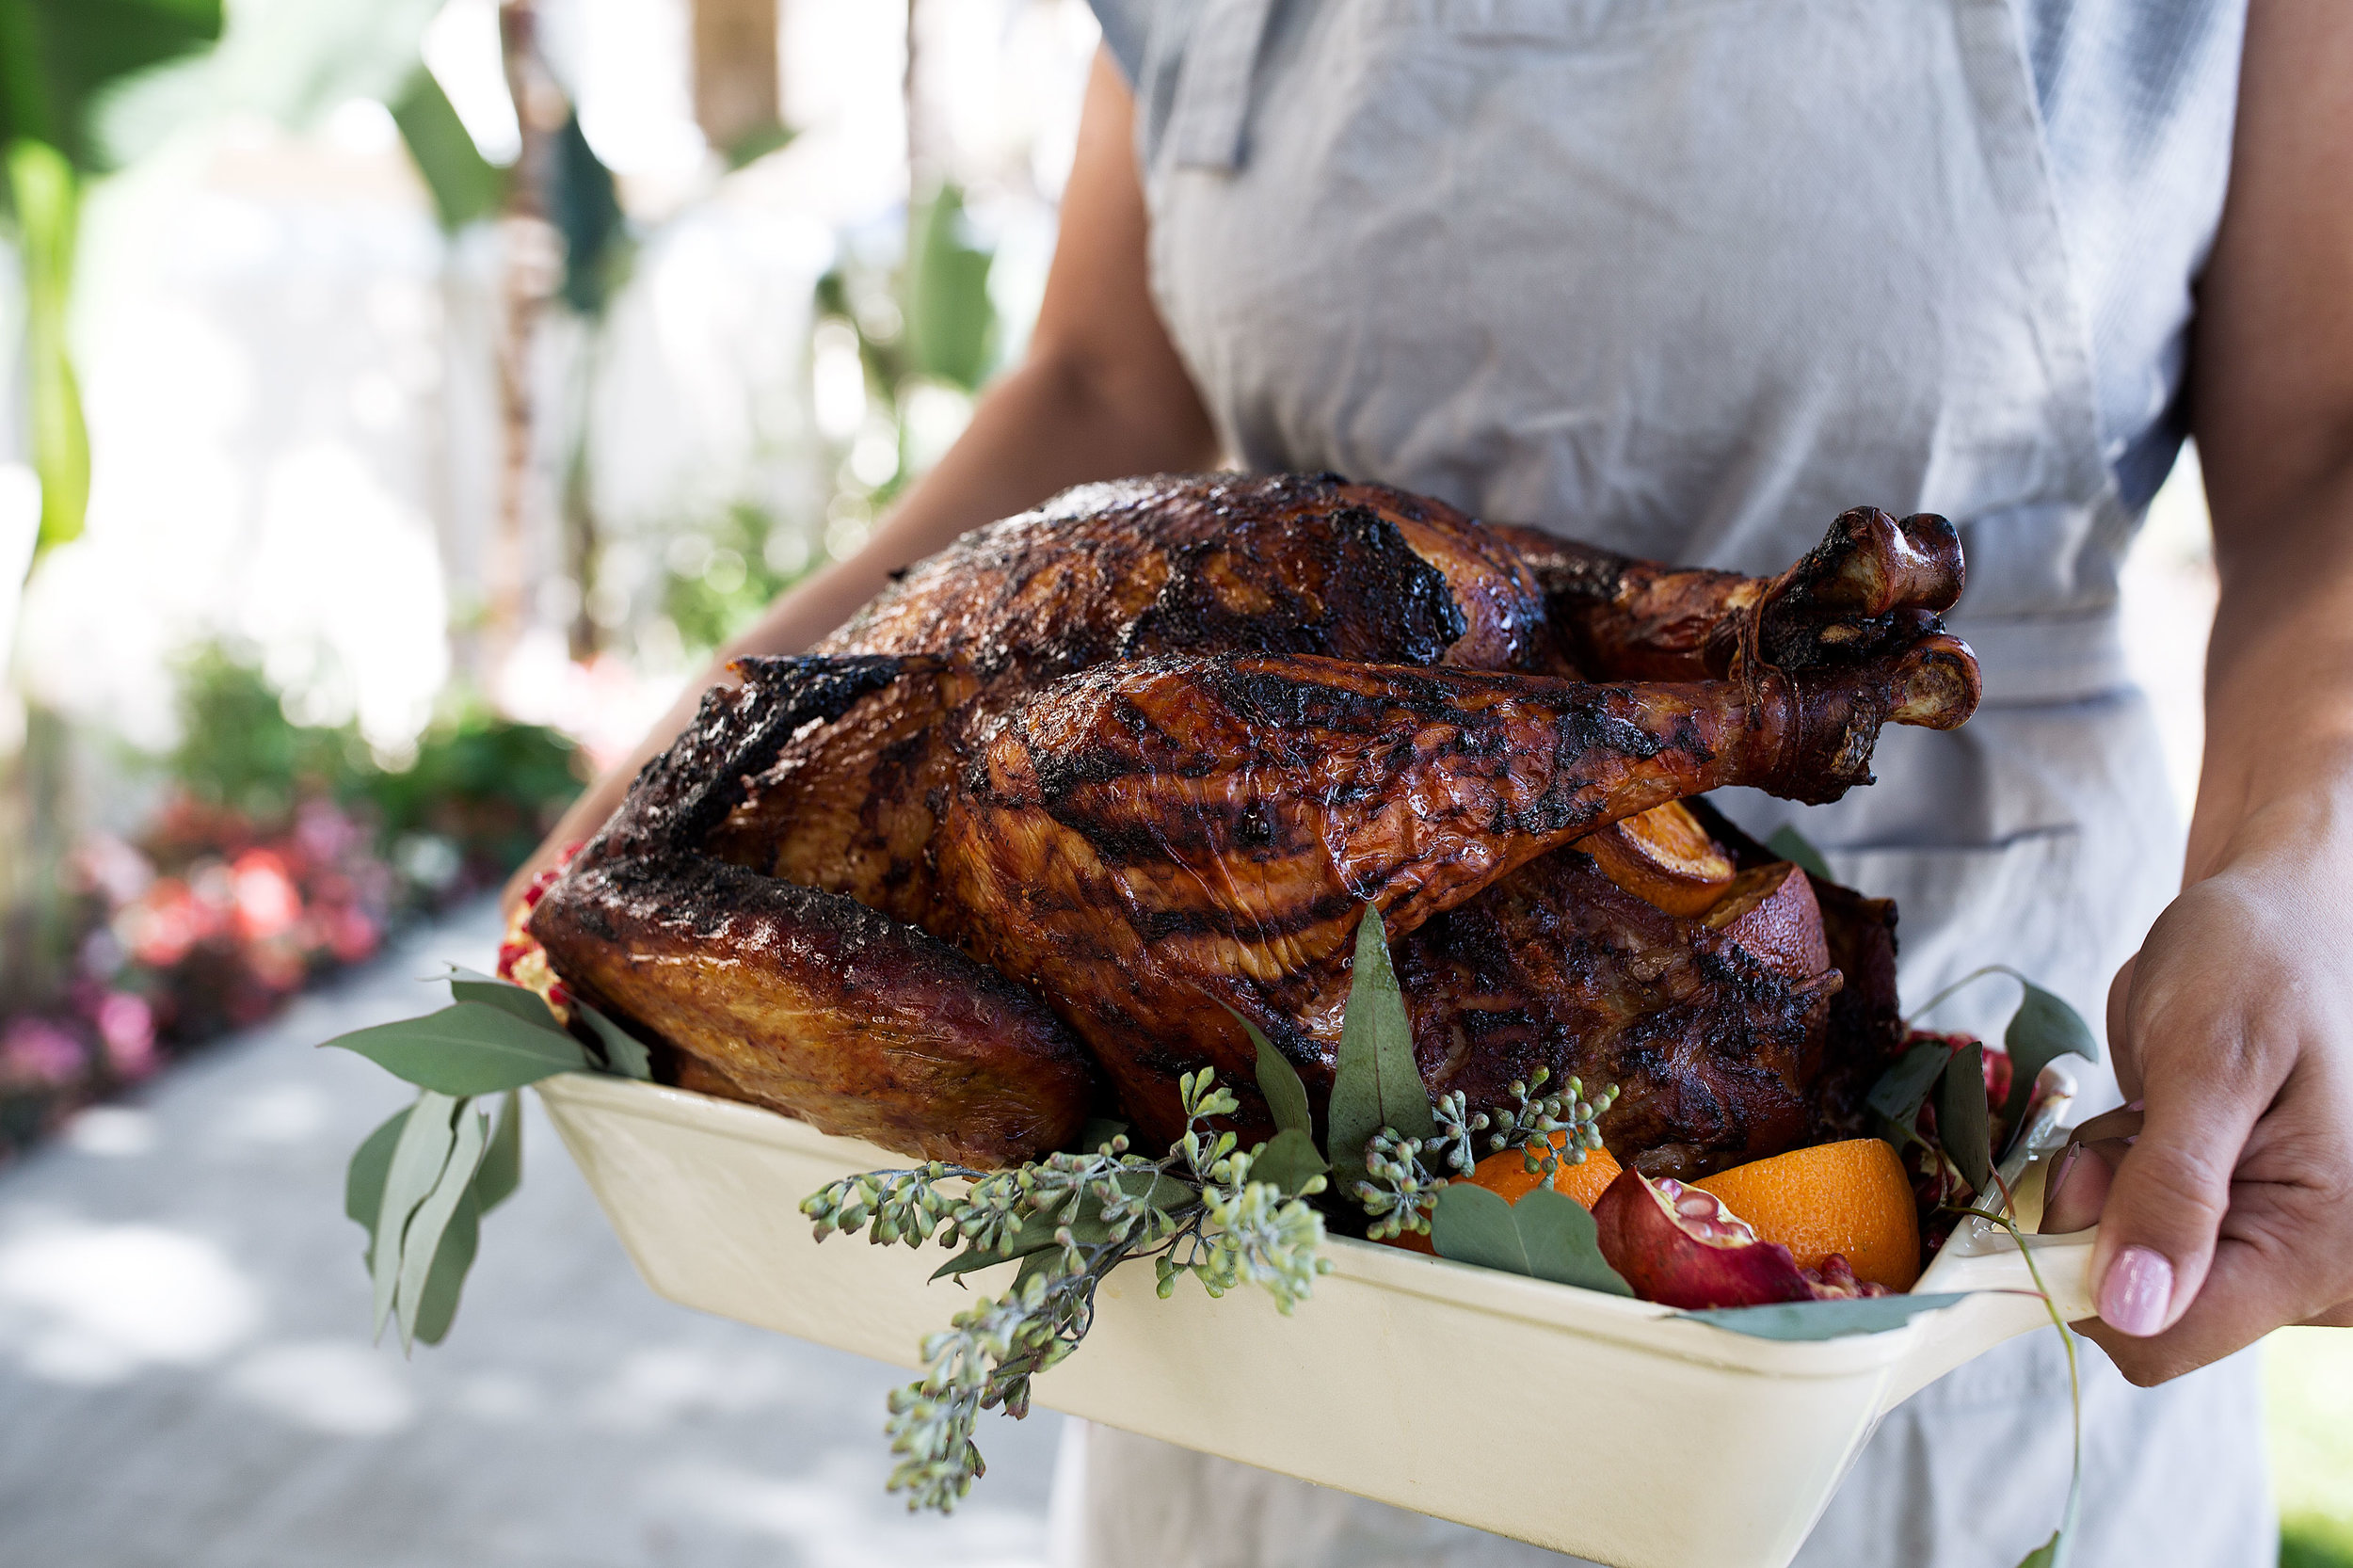 Home-depot-chili-rubbed-turkey-with-oranges-5.jpg